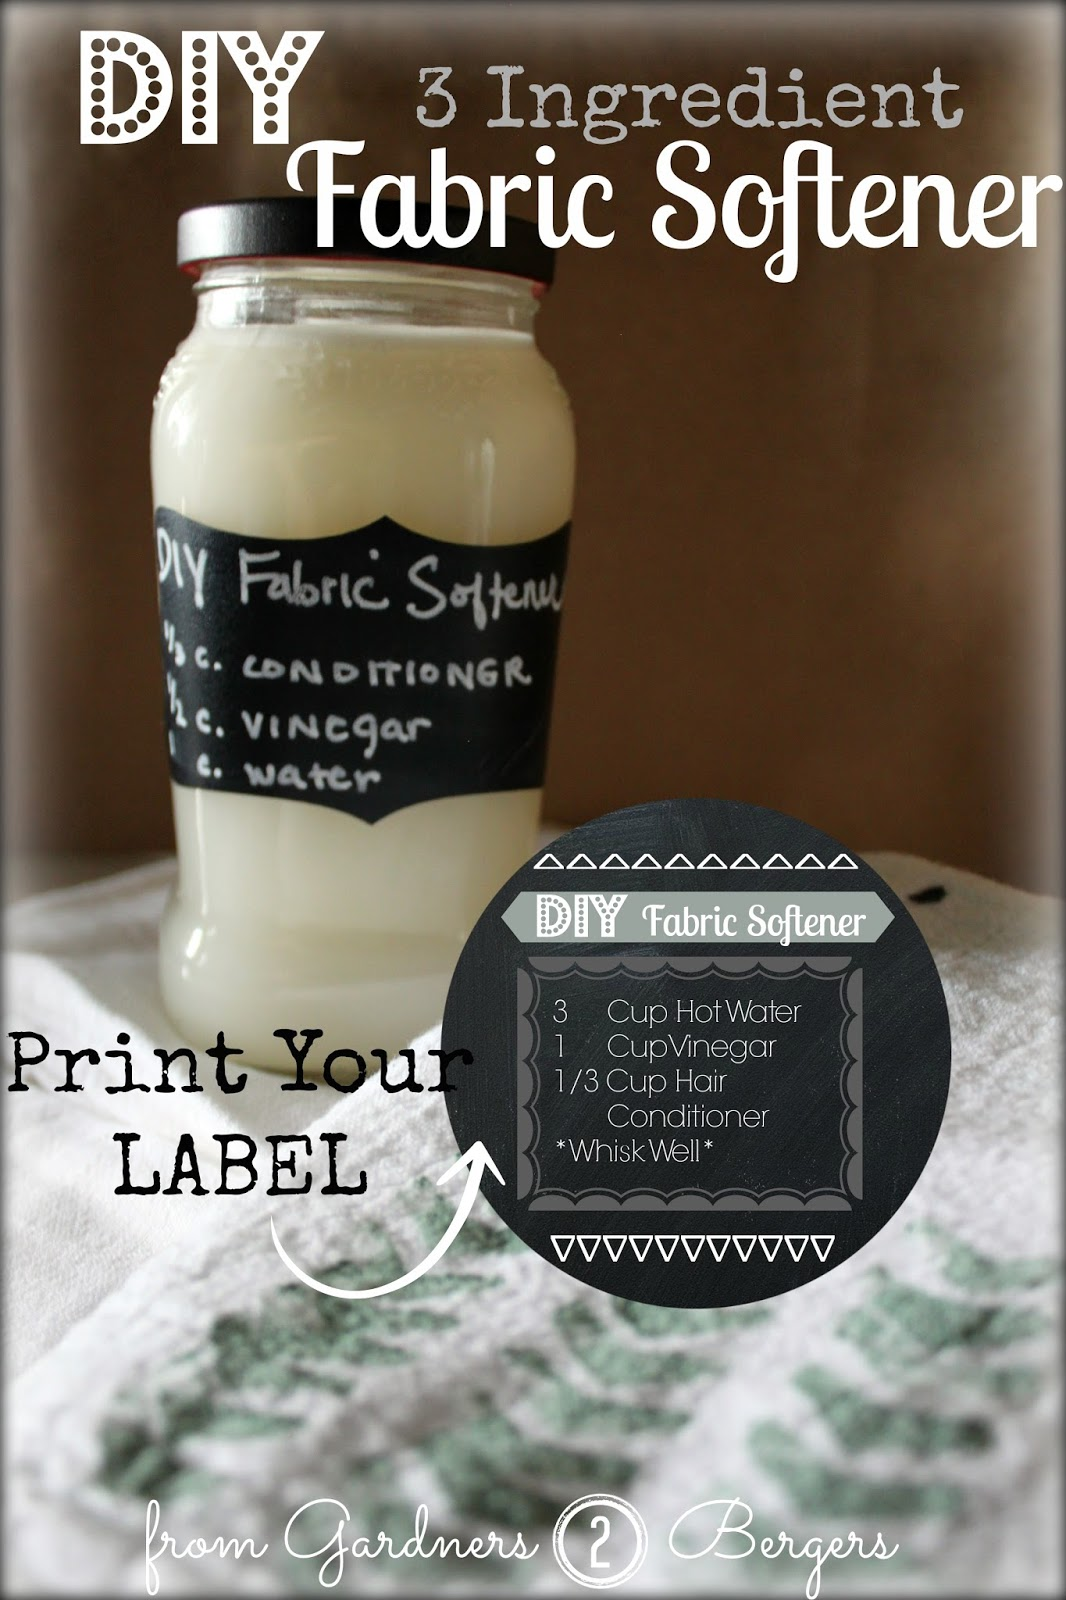 DIY Fabric Softener and Printable Label